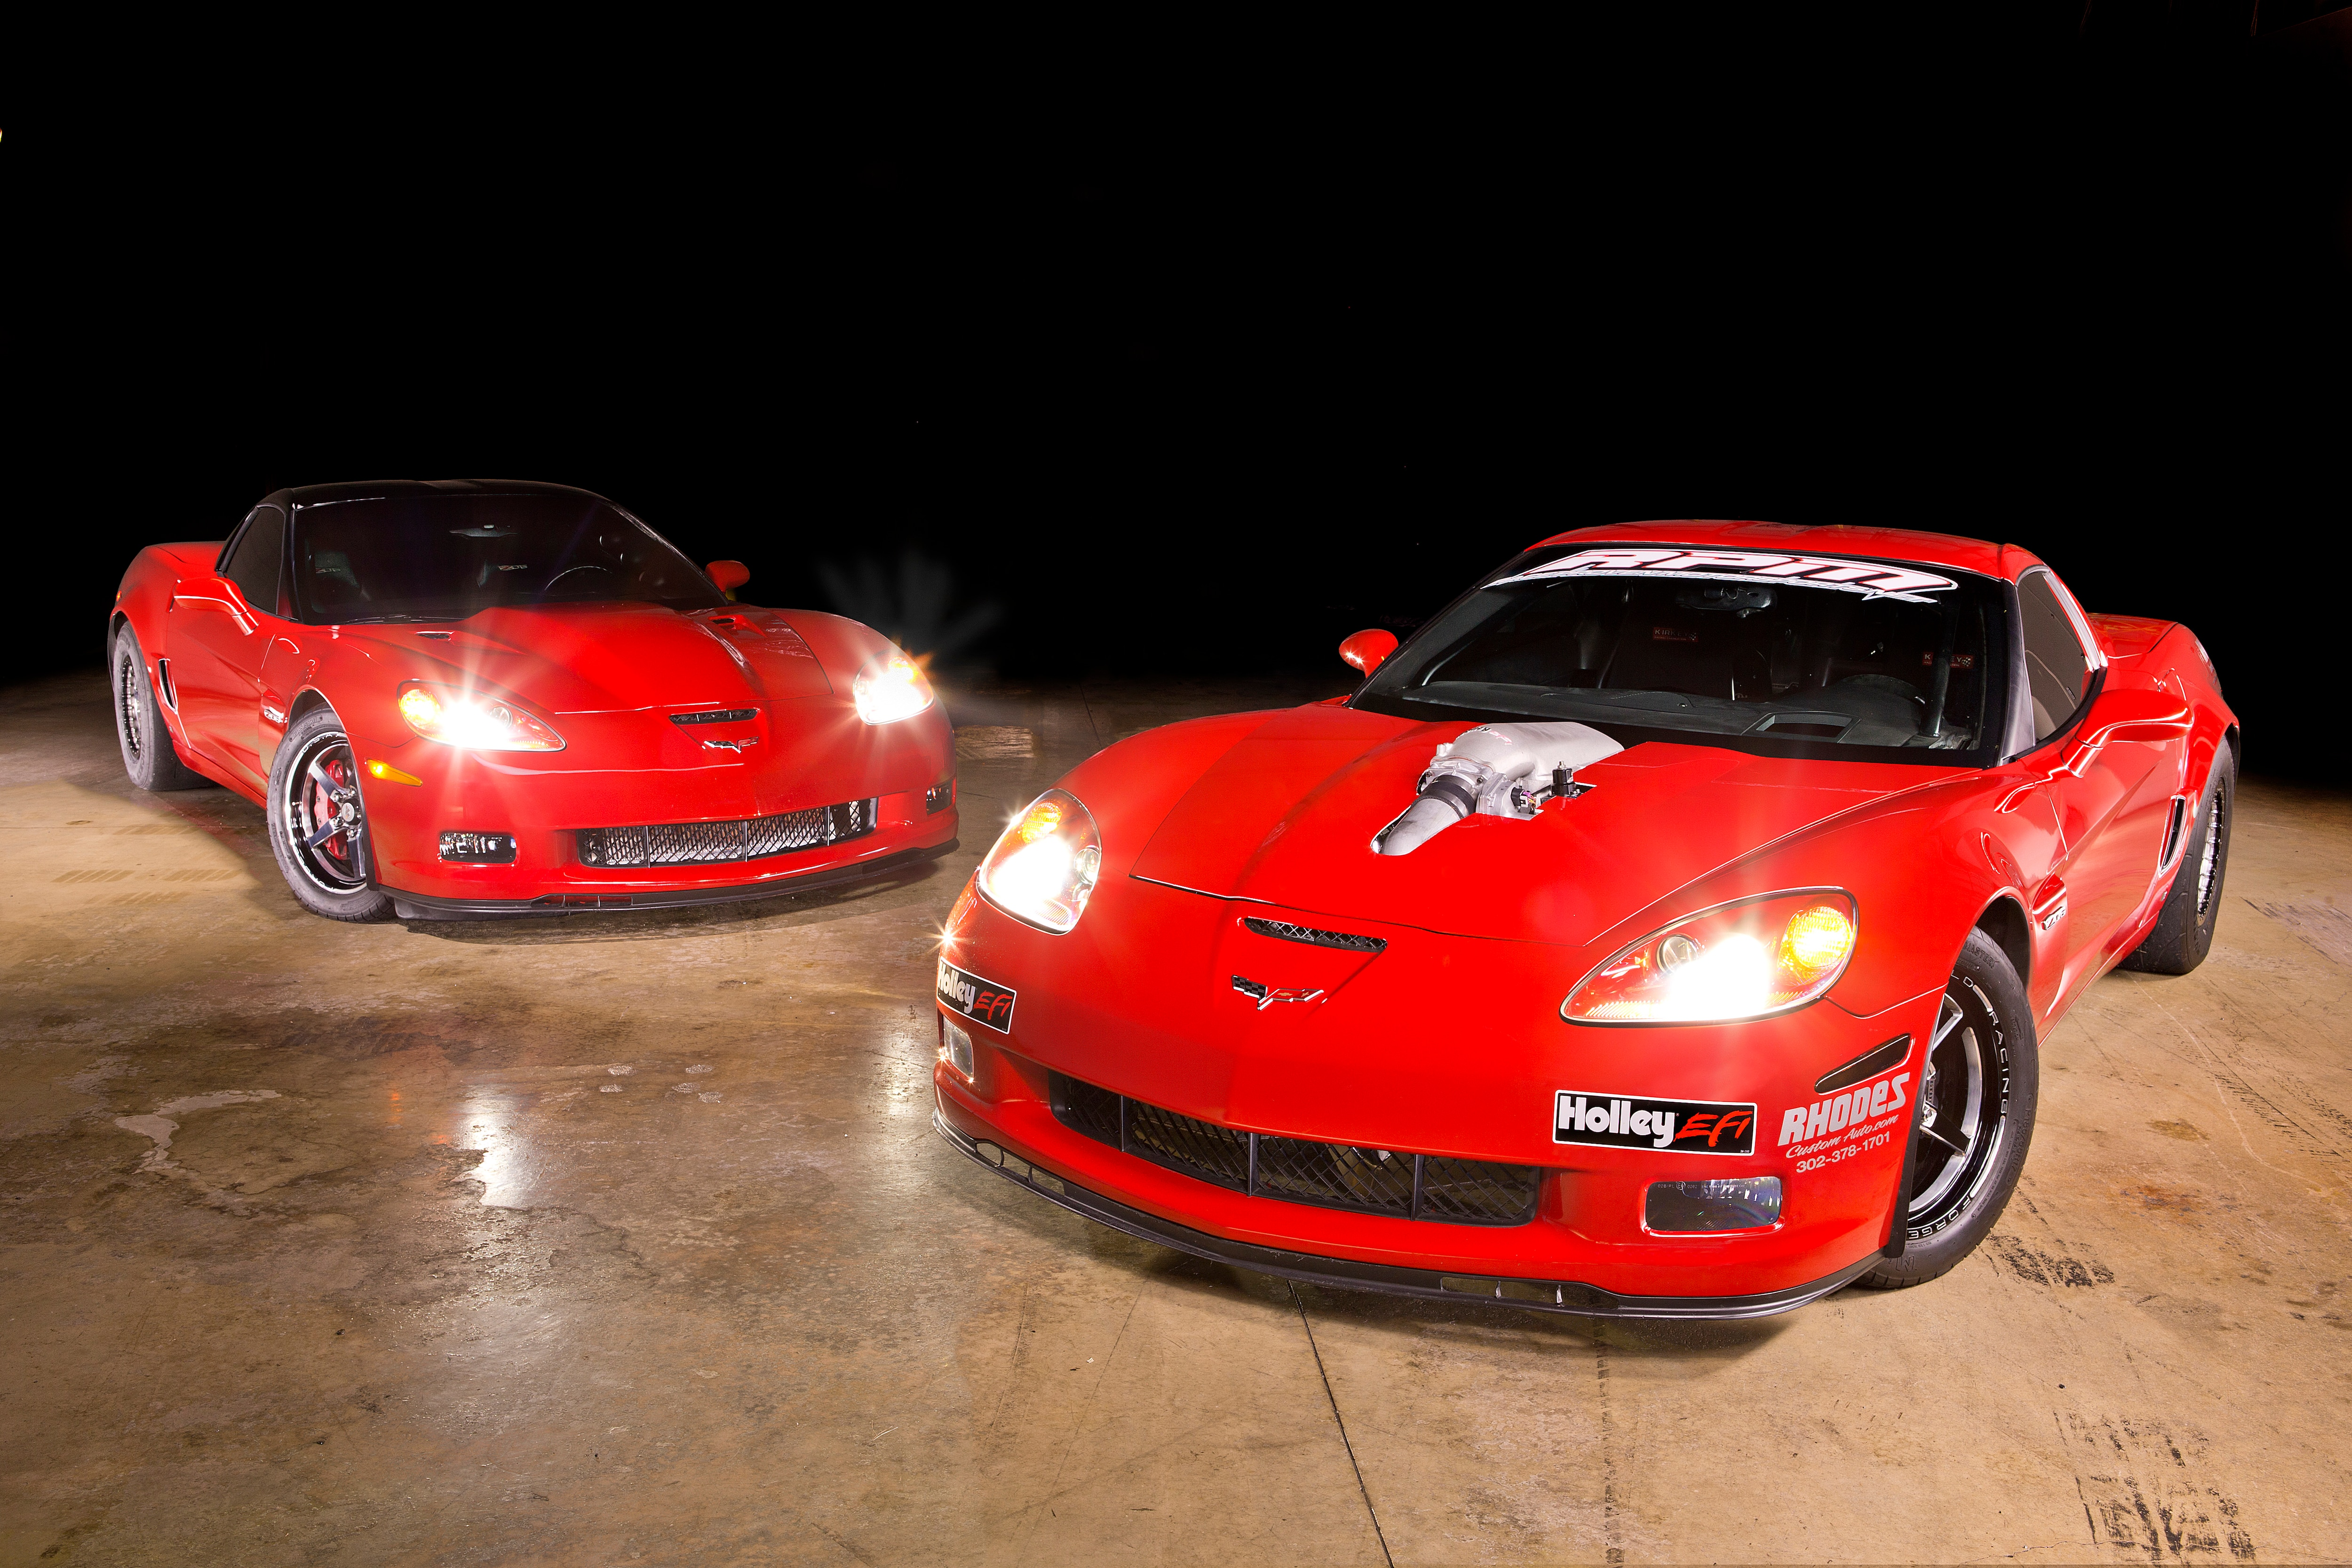 Street vs Track: A Pair of ProCharged 2007 Corvette C6 Z06s Packing 1,200+ RWHP